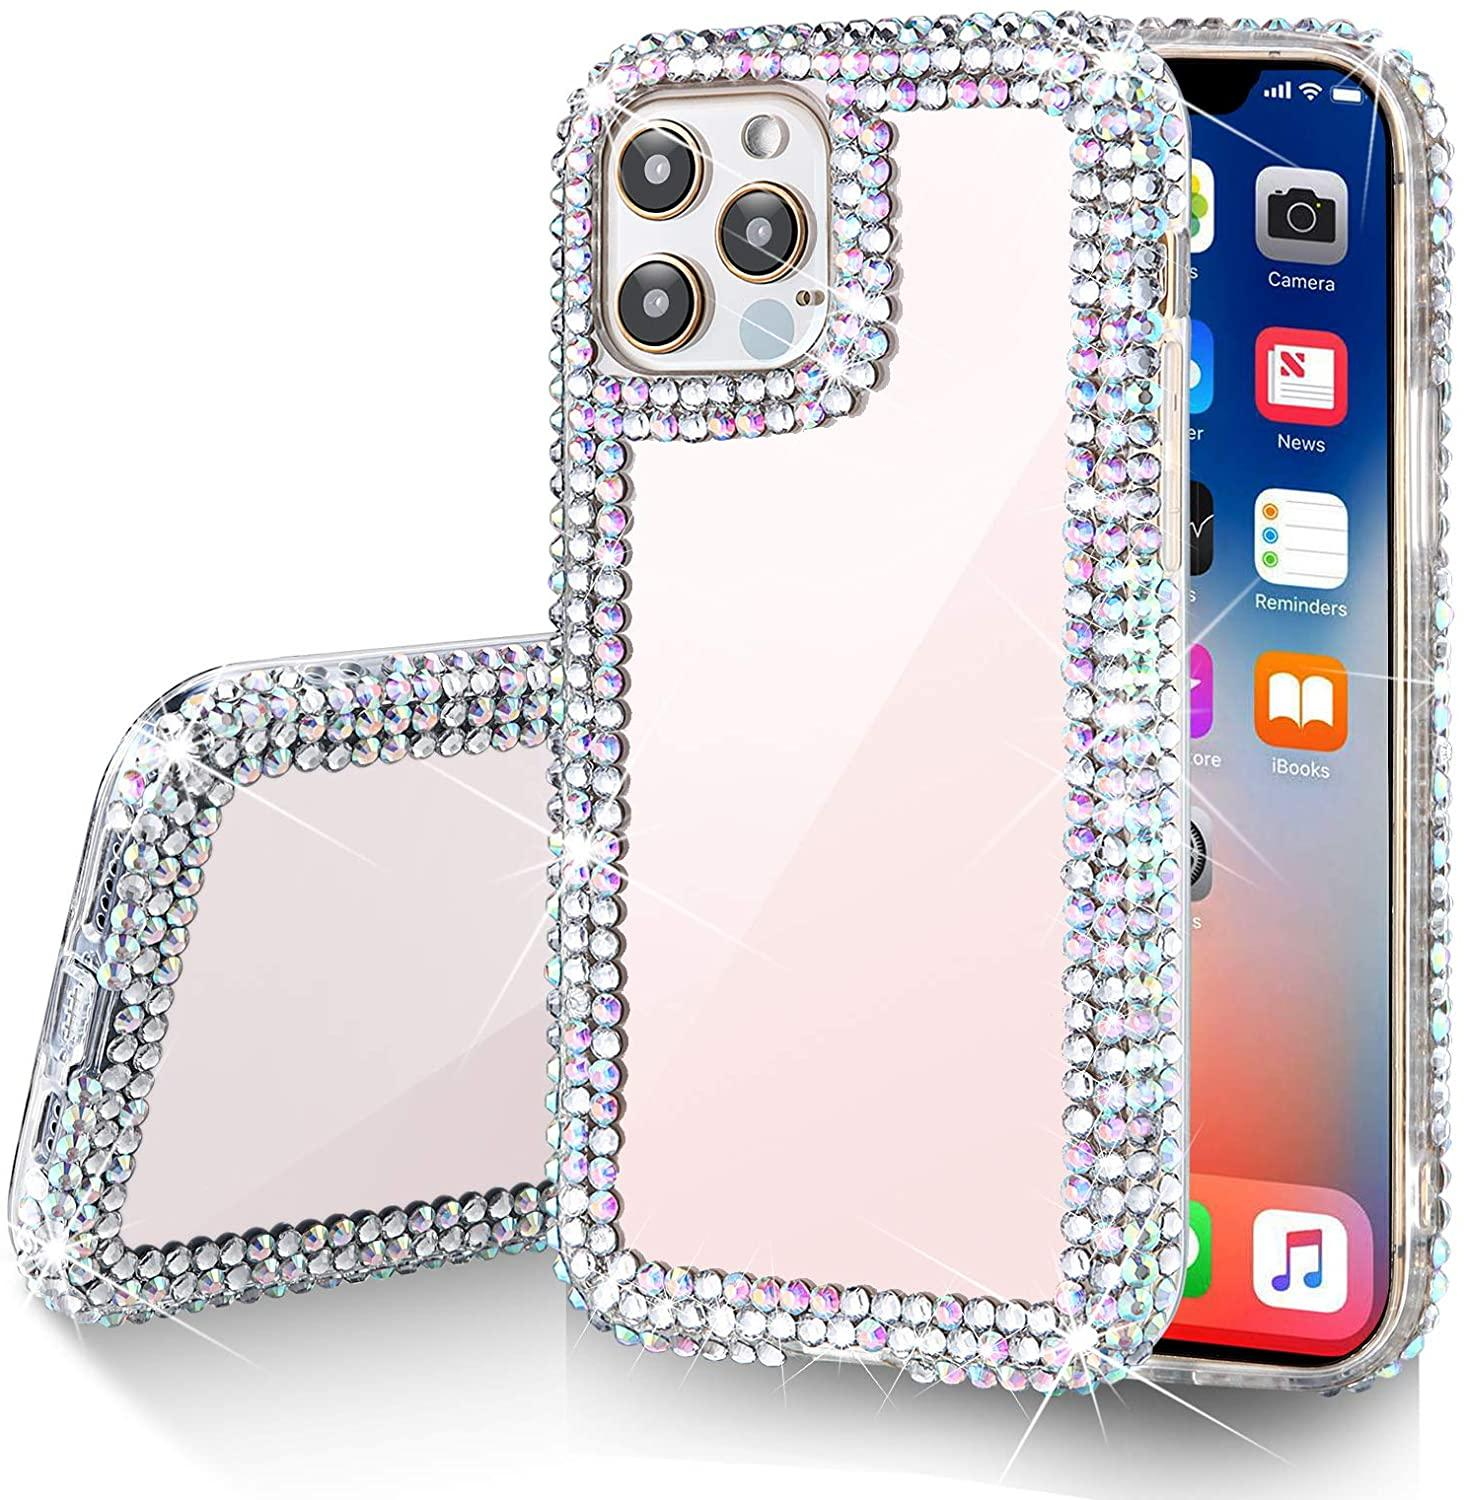 Luxury Diamond Glitter Bling Crystal TPU Cell Phone Cases For iphone 6 7 8plus Xr Xs 11 12 Pro Max